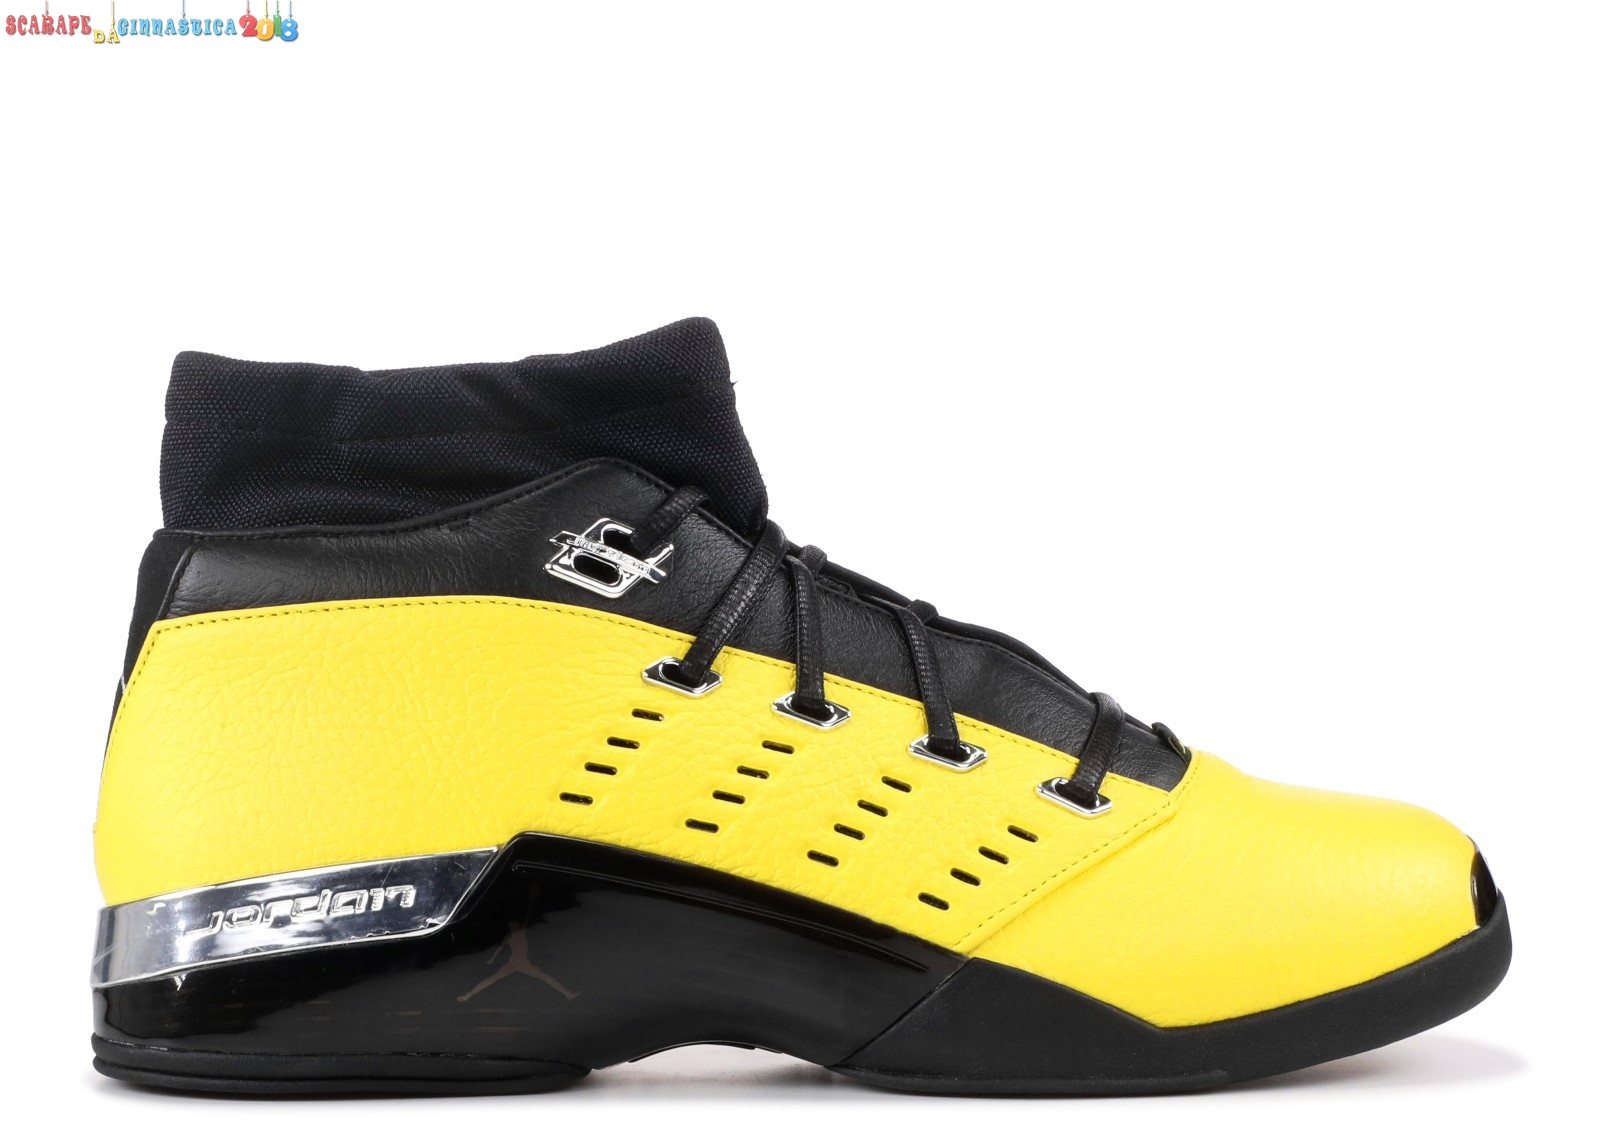 "Buy Air Jordan 17 Ret Low ""Solefly Solefly"" Giallo Nero (aj7321-003) - Uomo - Scarpe da basket"